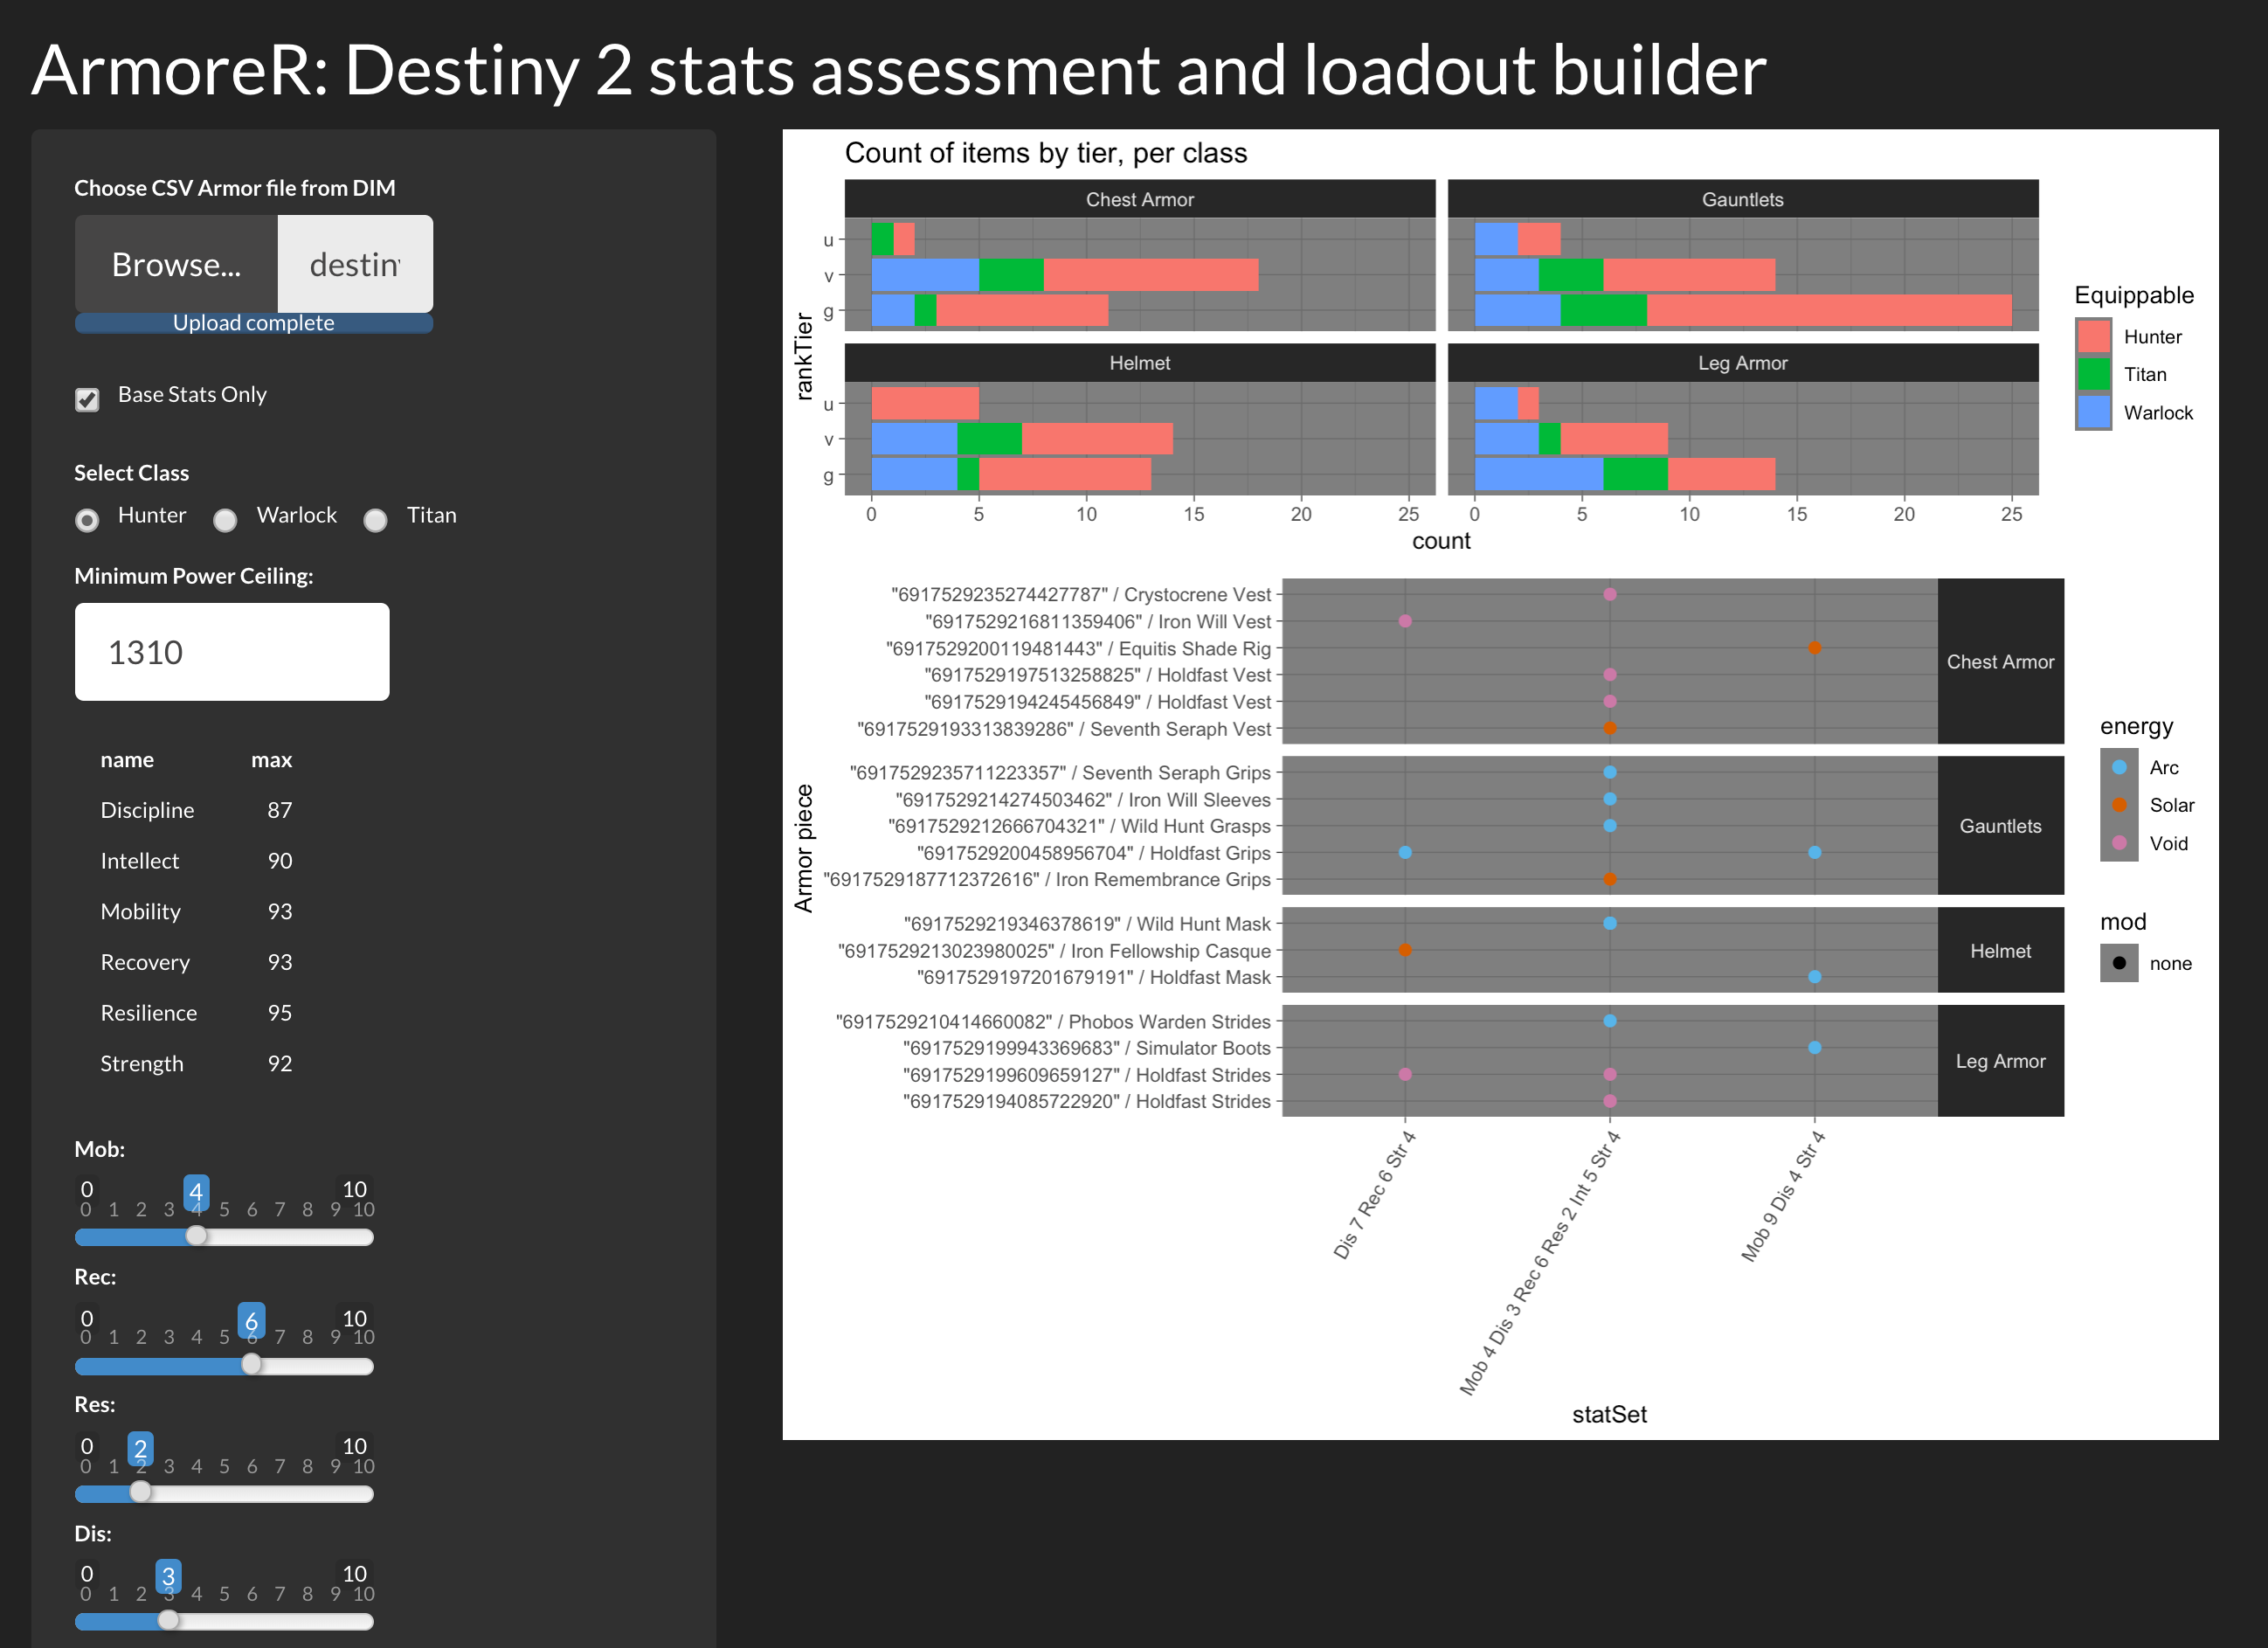 Screenshot showing several controls and rendered plots of armor set statistics from the game Destiny